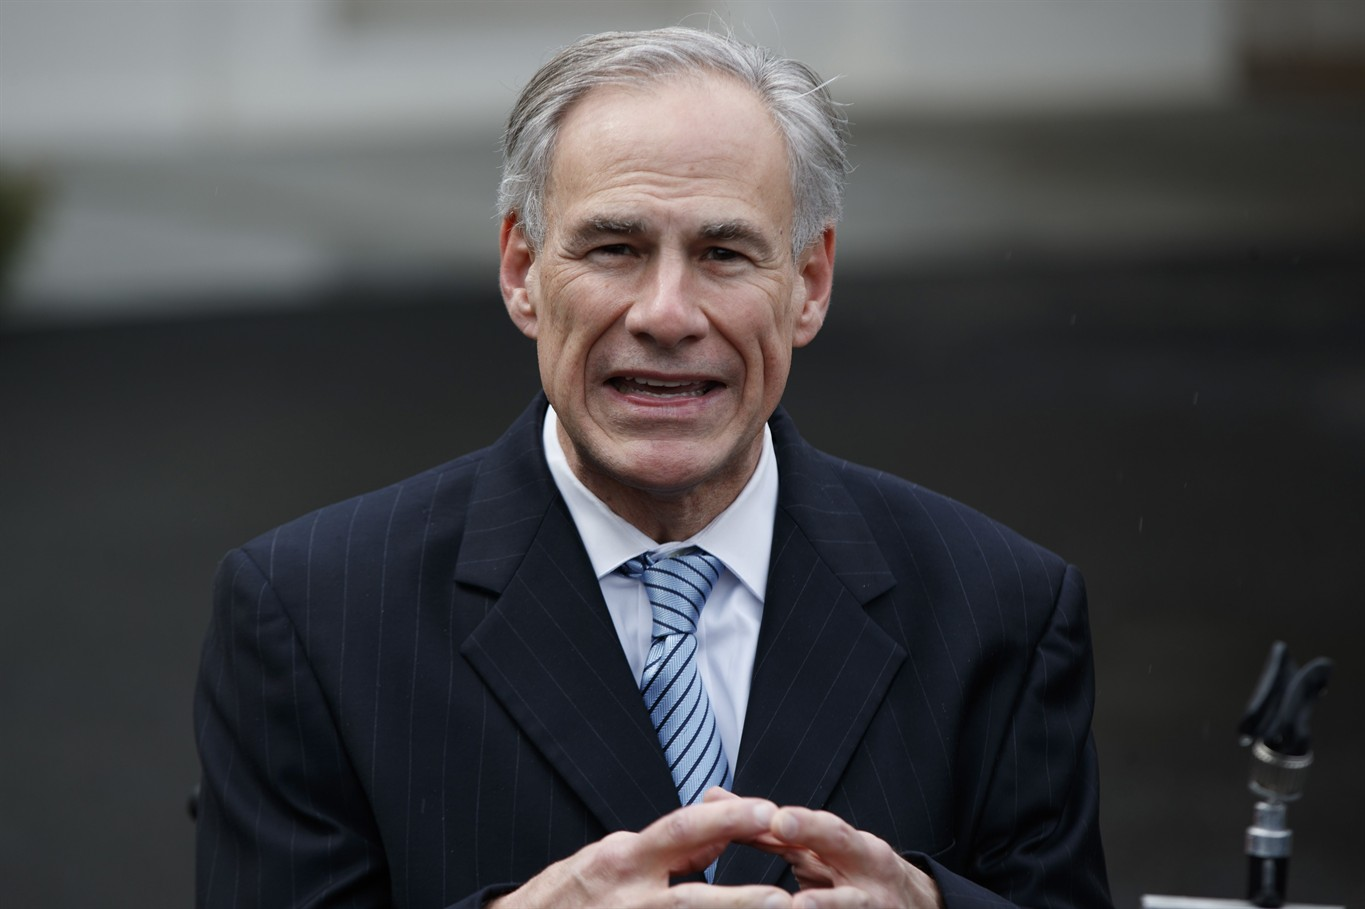 Texas governor signs ban on so-called 'sanctuary cities'